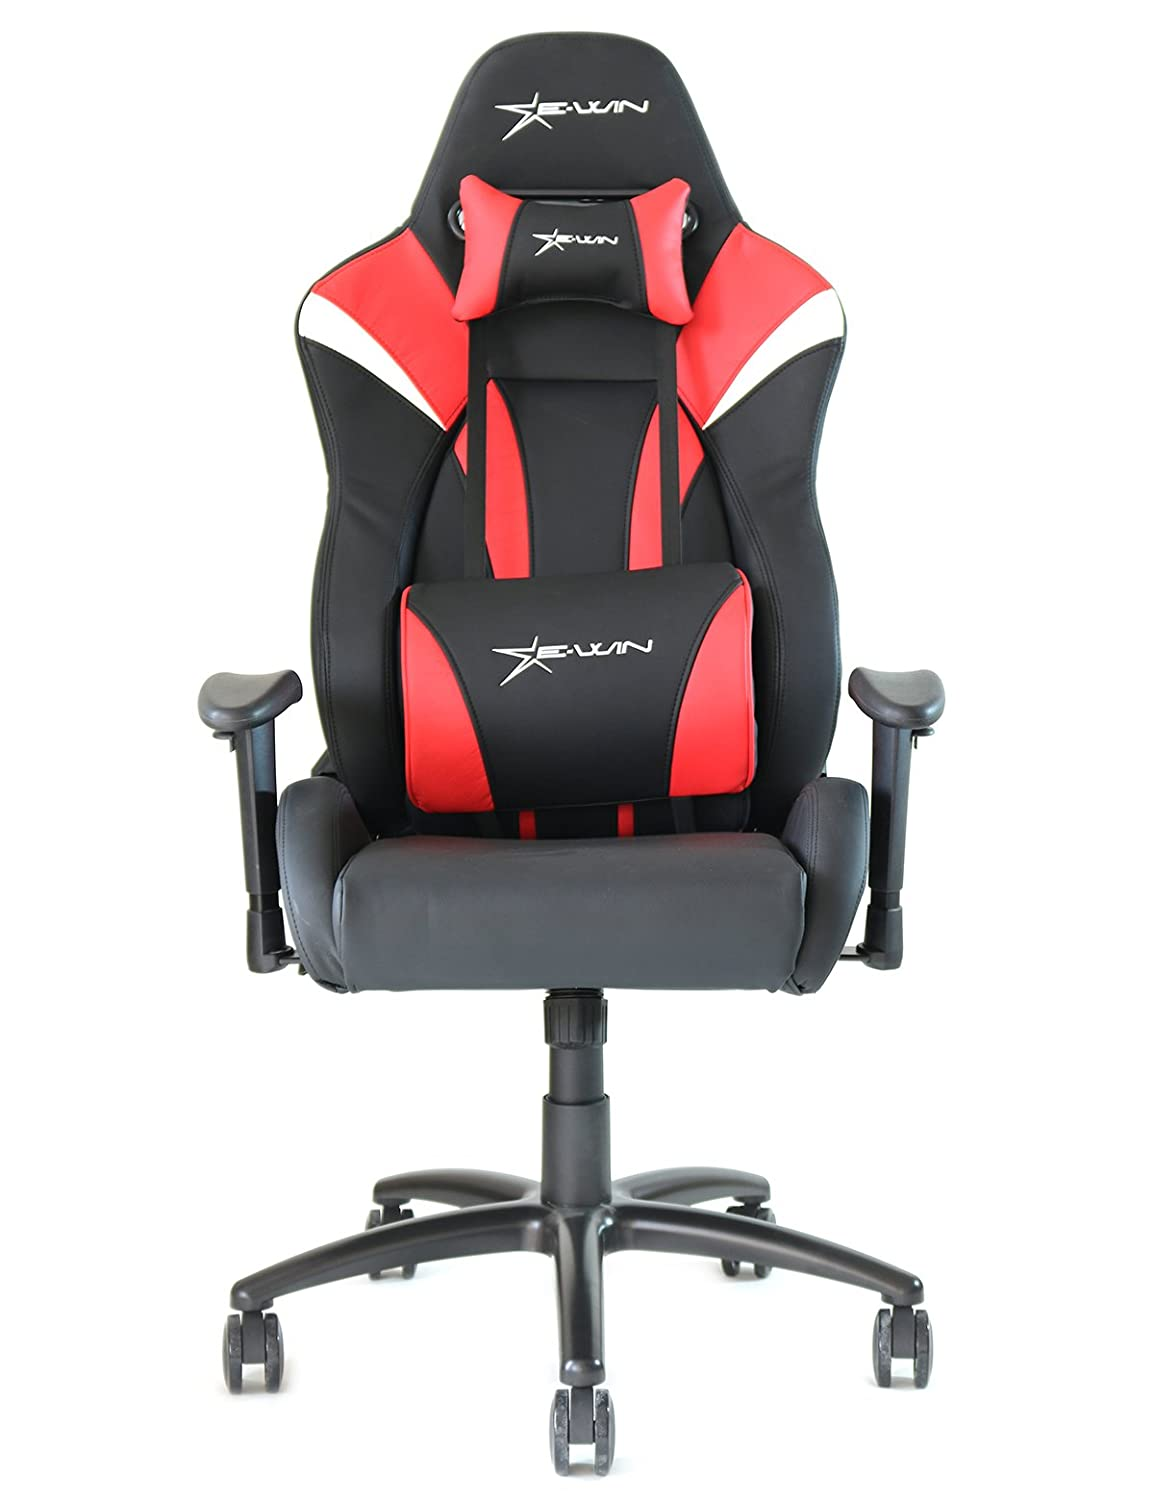 Ewin Chair Hero Series Ergonomic Computer Gaming Office Racing Chair with Pillows-HRE (Black/Red)